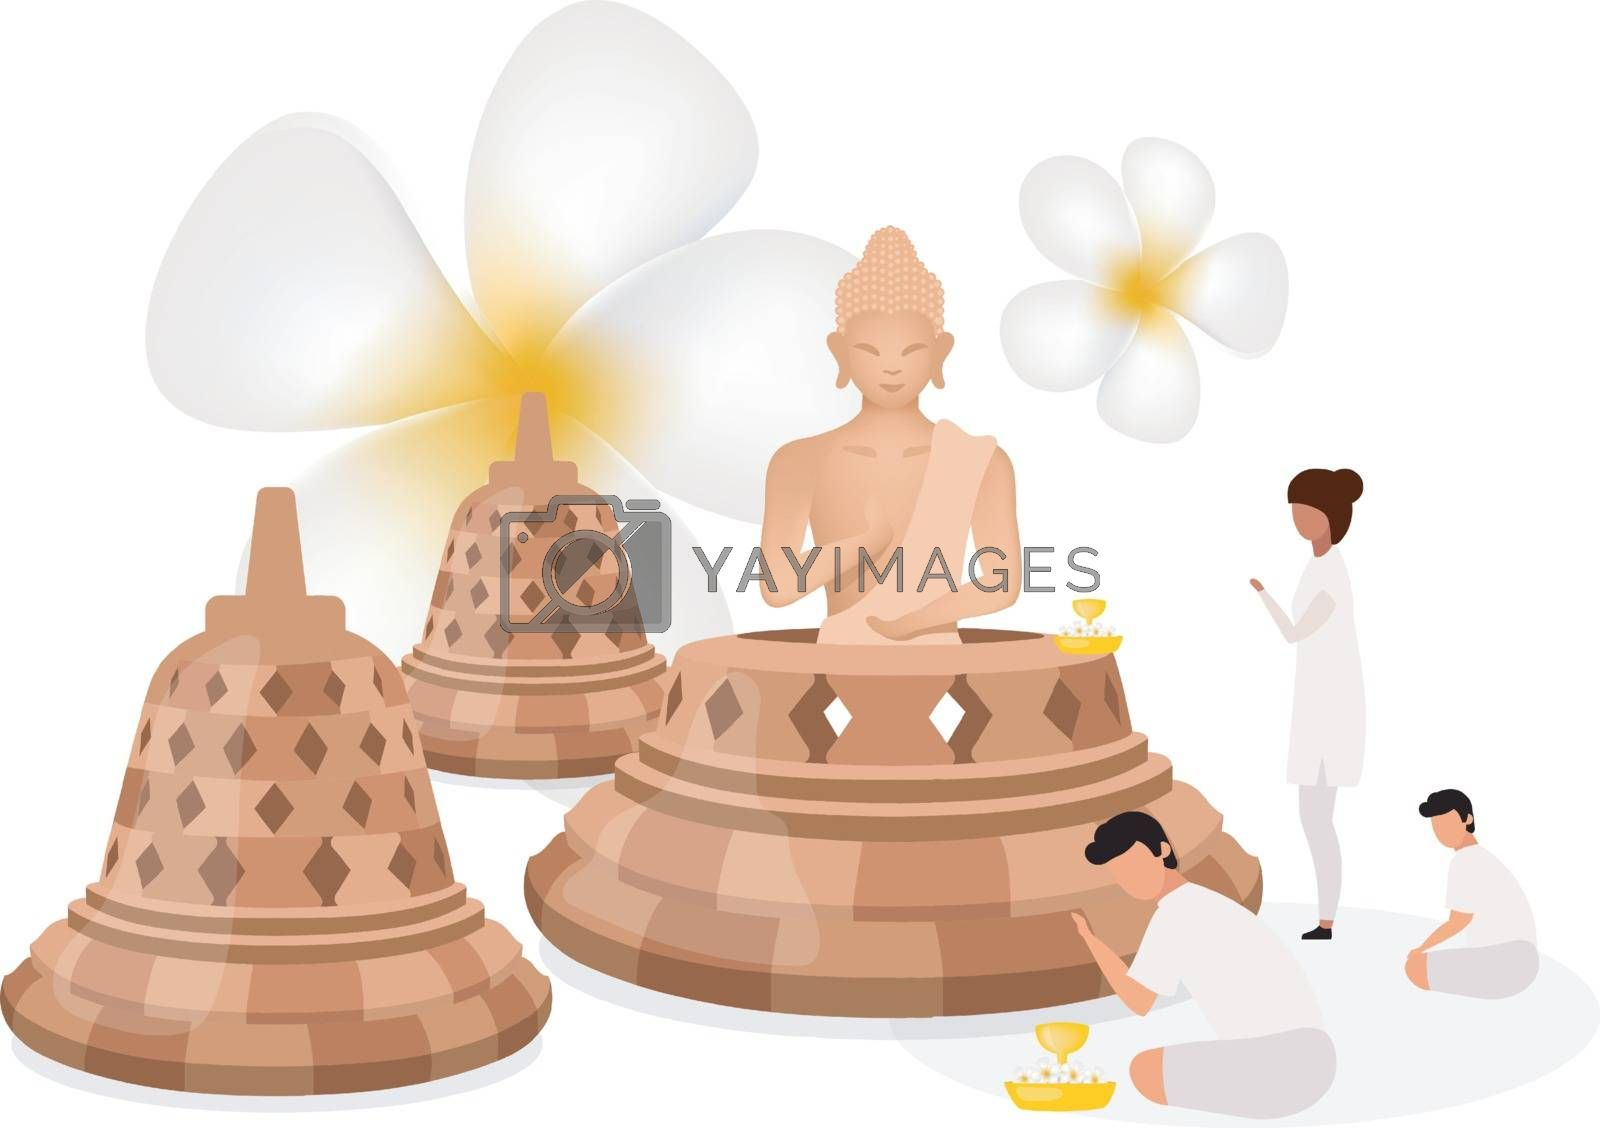 Place of worship flat vector illustration. Buddha religious sculpture. Indonesian religion. Buddhism. Meditating people. Men and women isolated cartoon character on white background